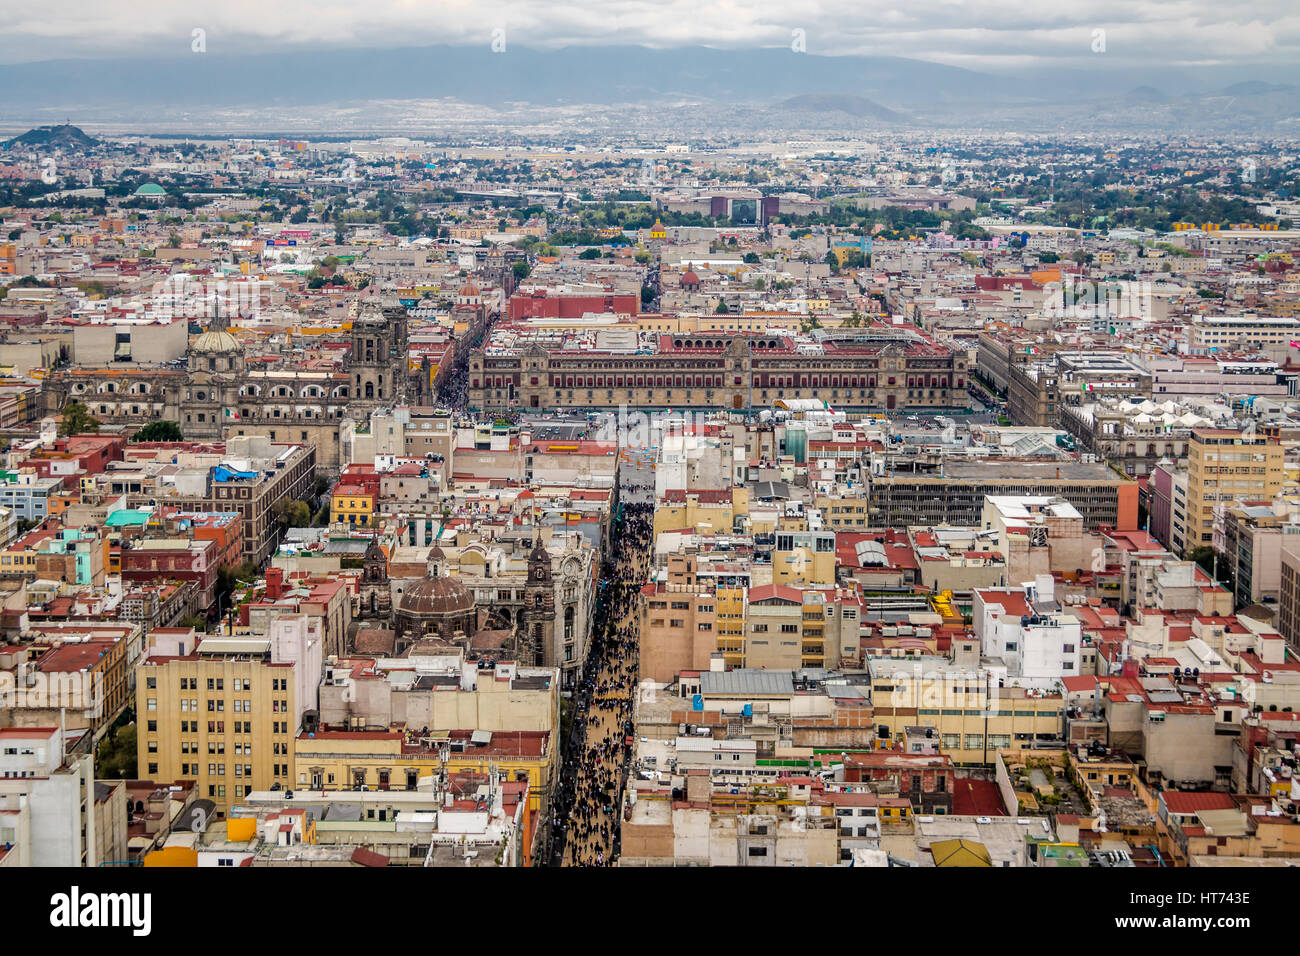 Aerial view of Mexico City - Mexico - Stock Image